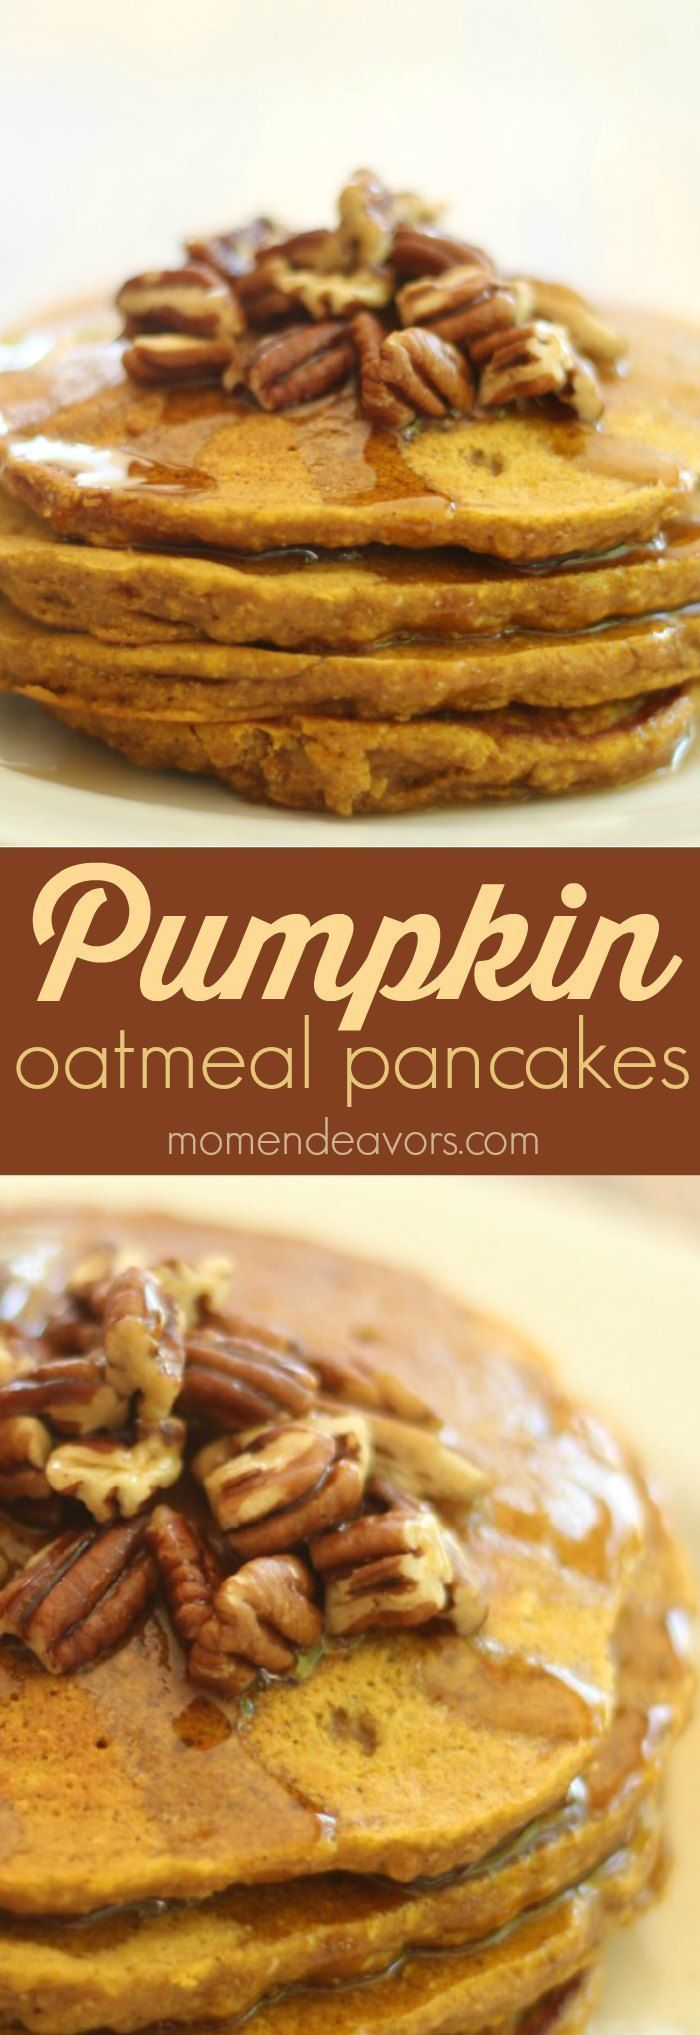 Delicious pumpkin oatmeal pancakes, plus links to 10+ more great fall pumpkin recipes!